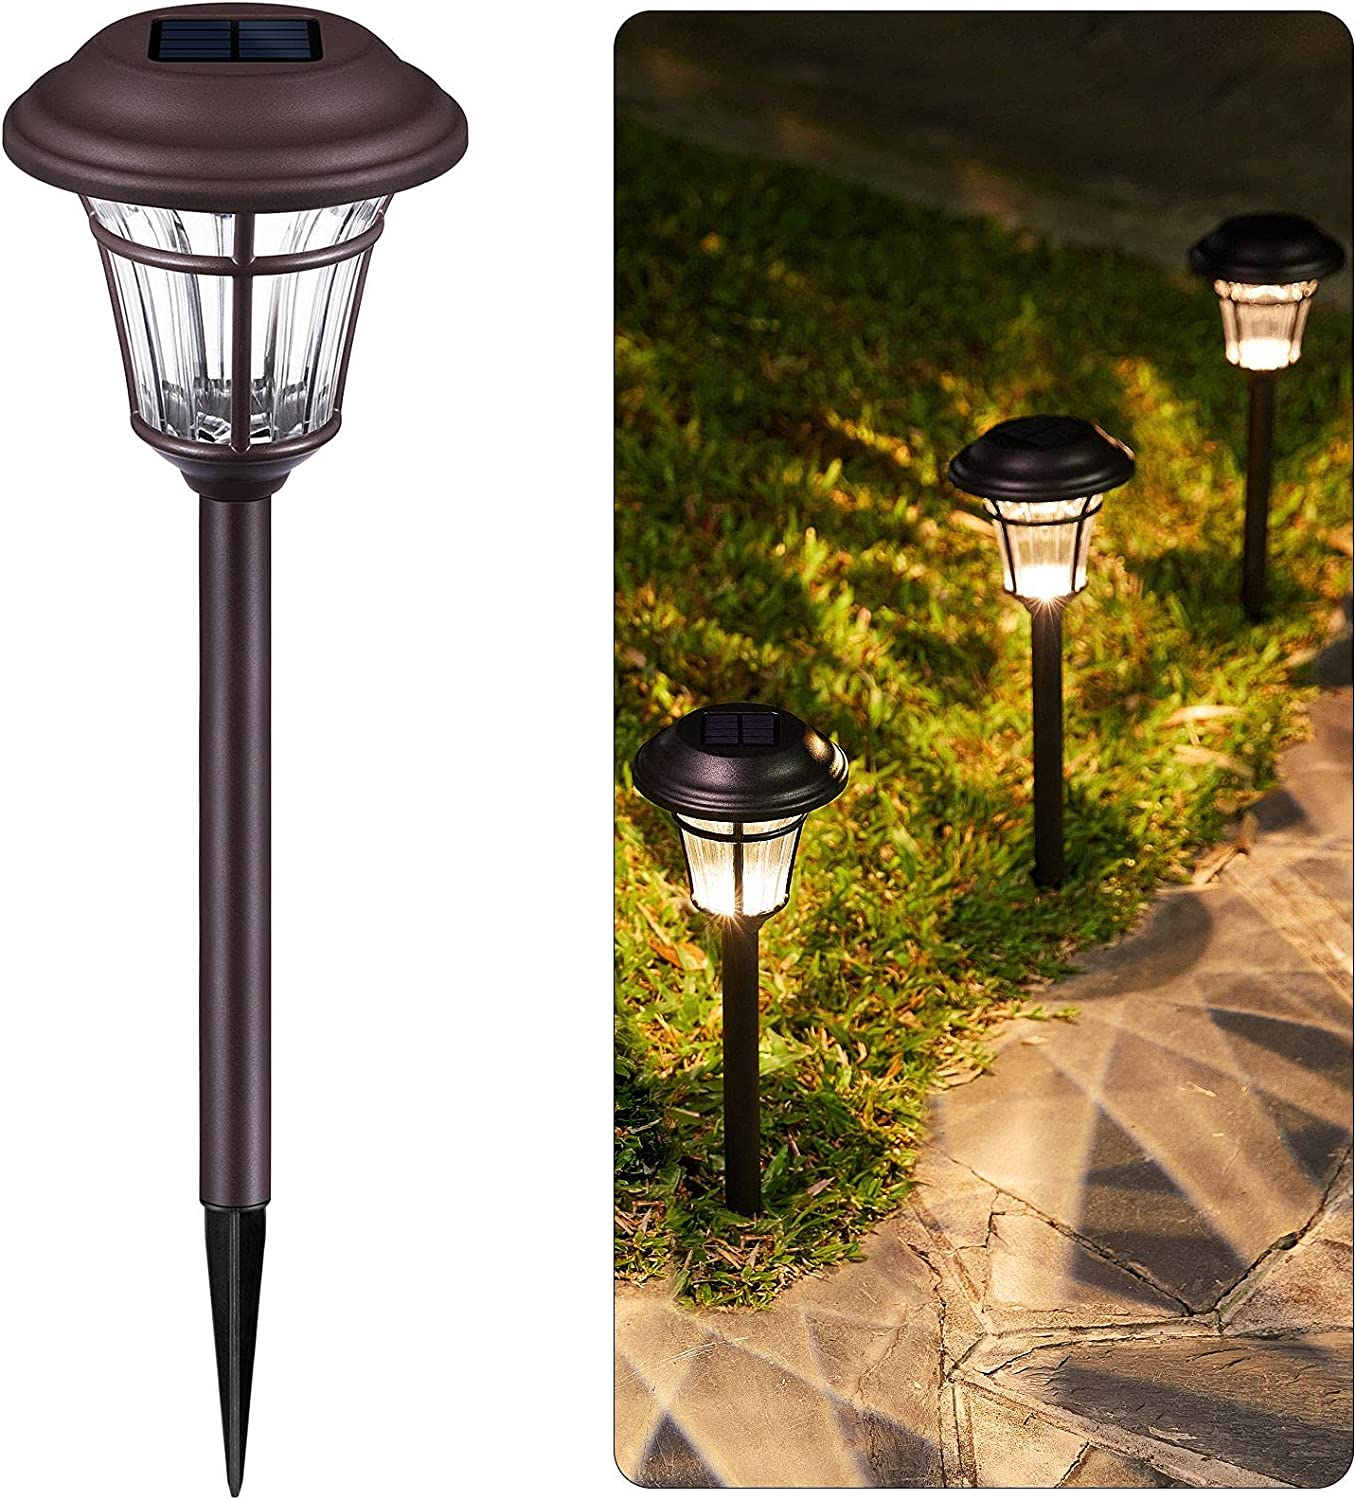 Brightown Solar Pathway Lights 6 Pack Brown Stake-6 Lumen Auto On Off Solar Powered Rechargeable Battery Waterproof All Seasons Garden Landscape Lighting Lamp for Path Lawn Yard Patio Walkway Driveway